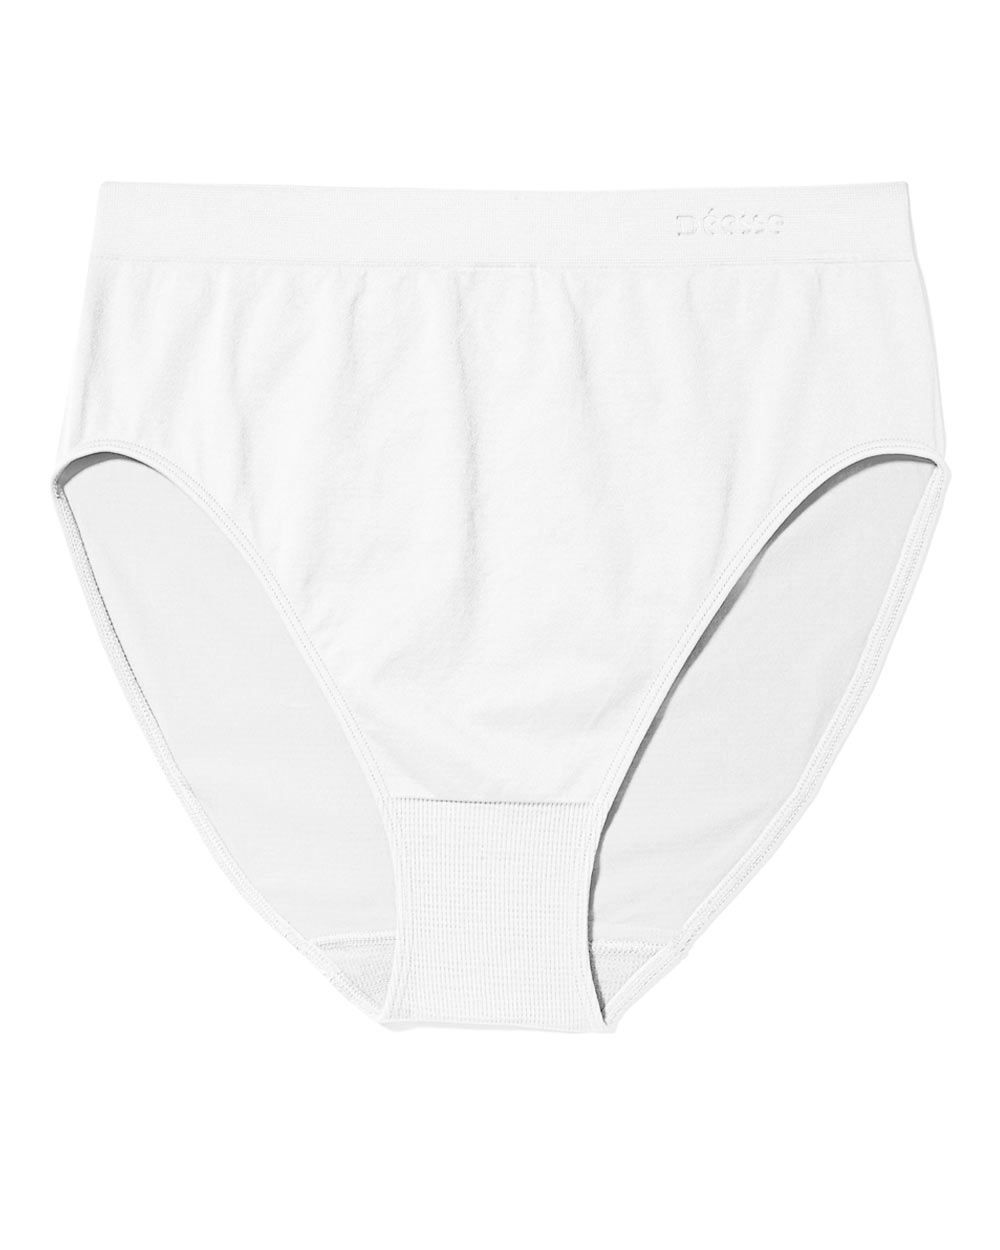 96e1df20000e3d Seamless Full Brief High Cut Panty - Déesse Collection | Devil in ...